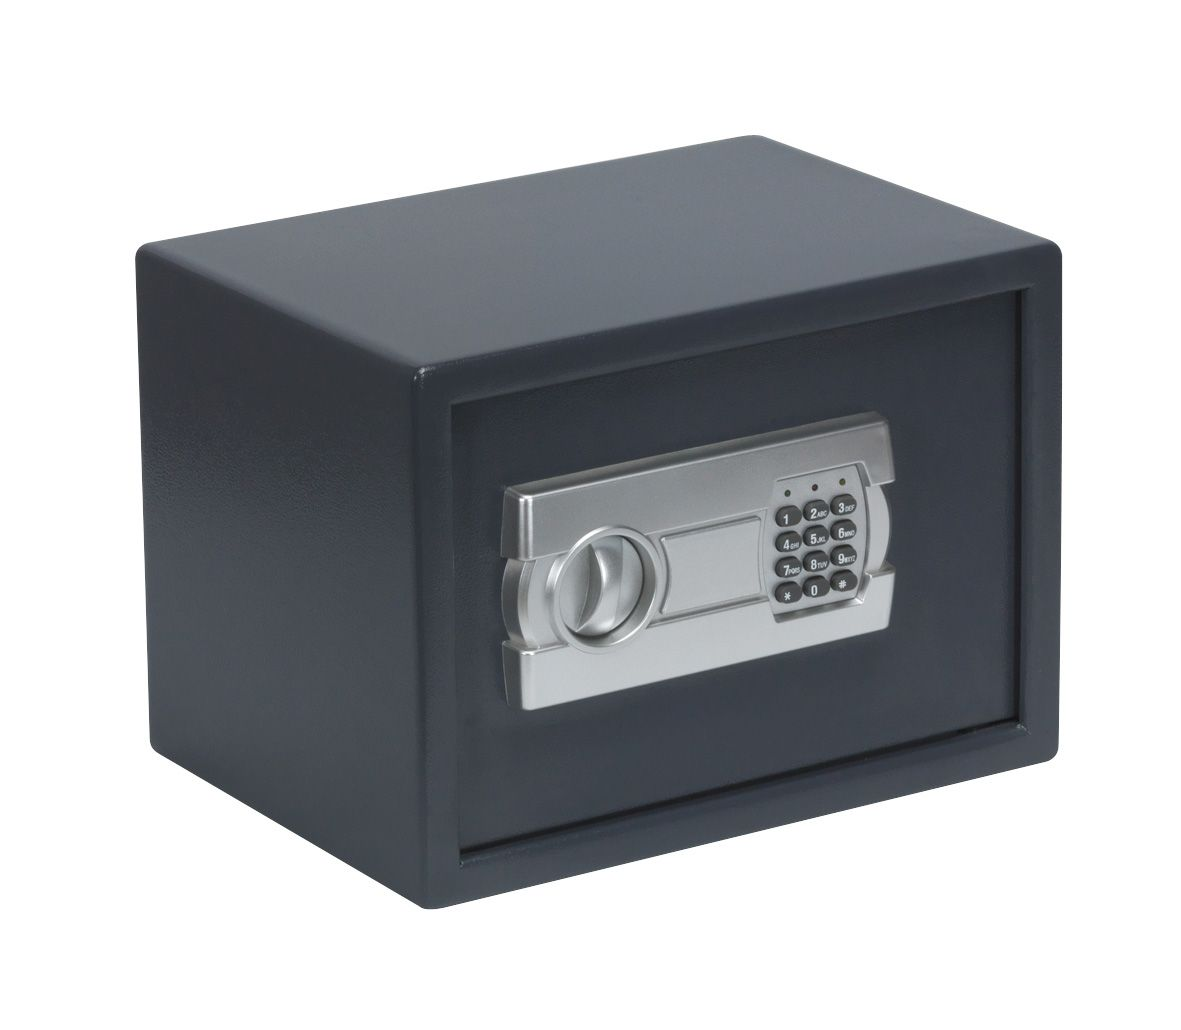 Sealey Electronic Combination Security Safe 350 x 250 x 250mm